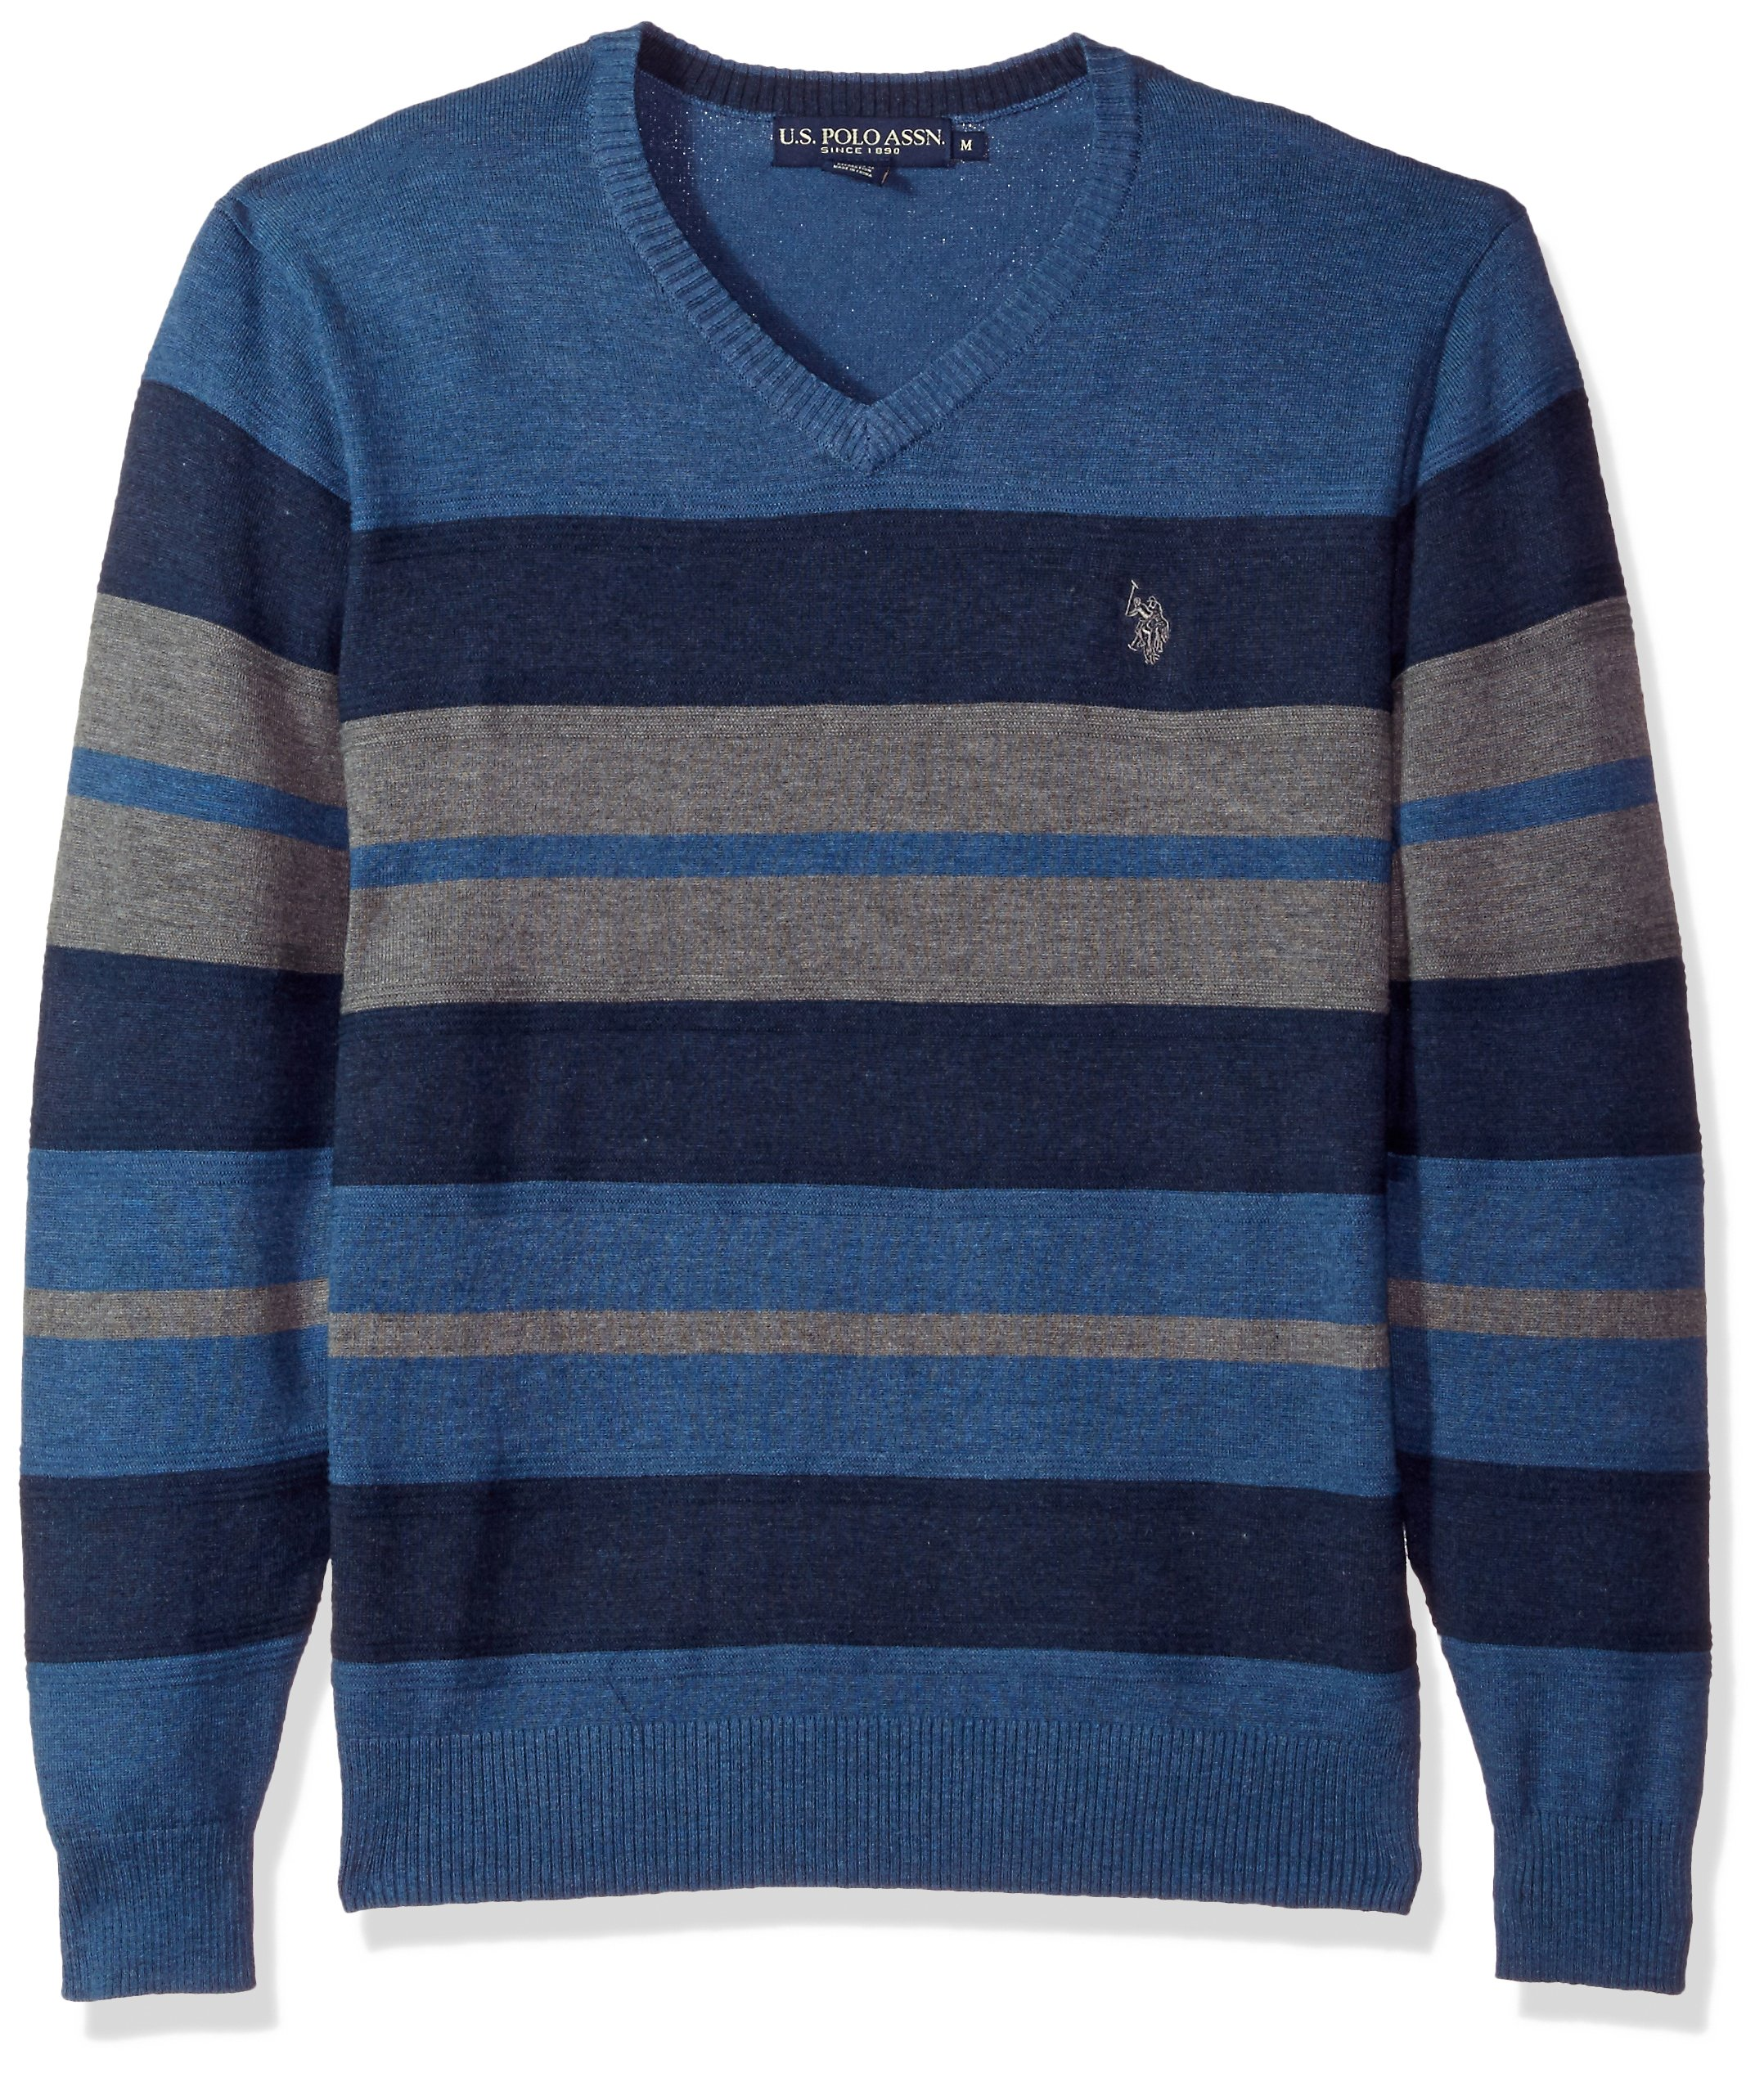 U.S. Polo Assn. Men's Stretch Textured Stripe V-Neck Sweater, Pacific Heather, XX-Large by U.S. Polo Assn.